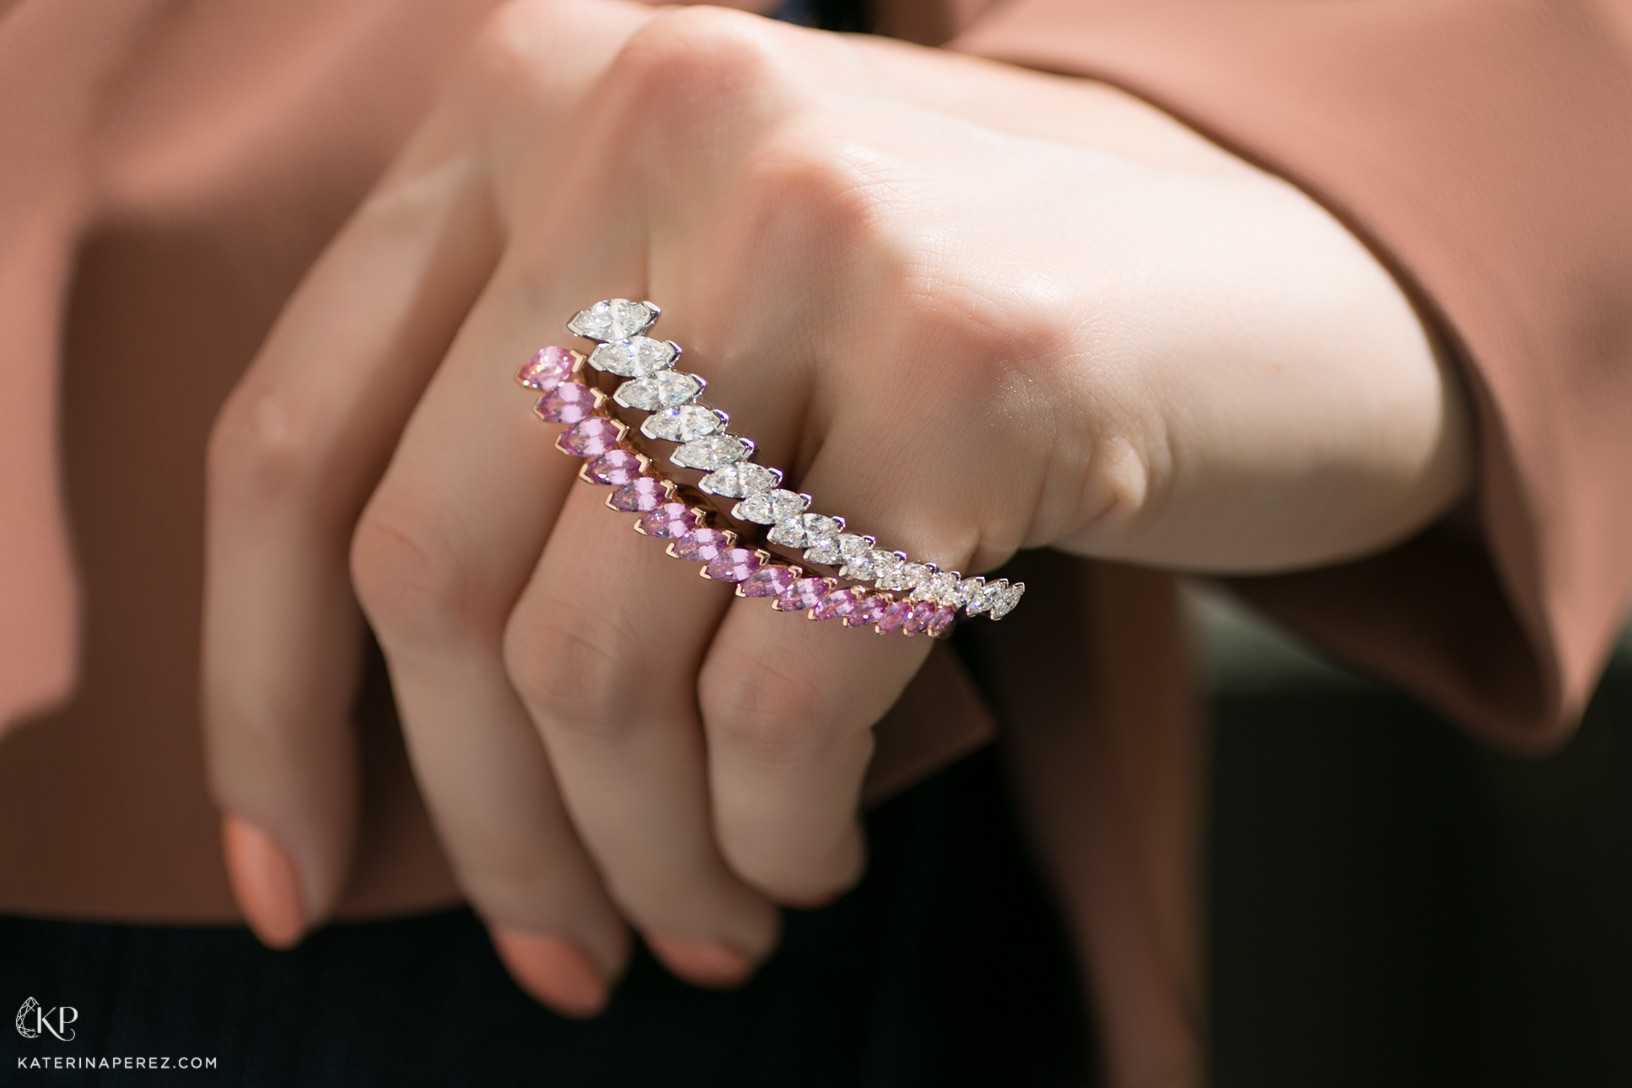 Baenteli 'Cascades' double finger rings in pink sapphires and diamonds